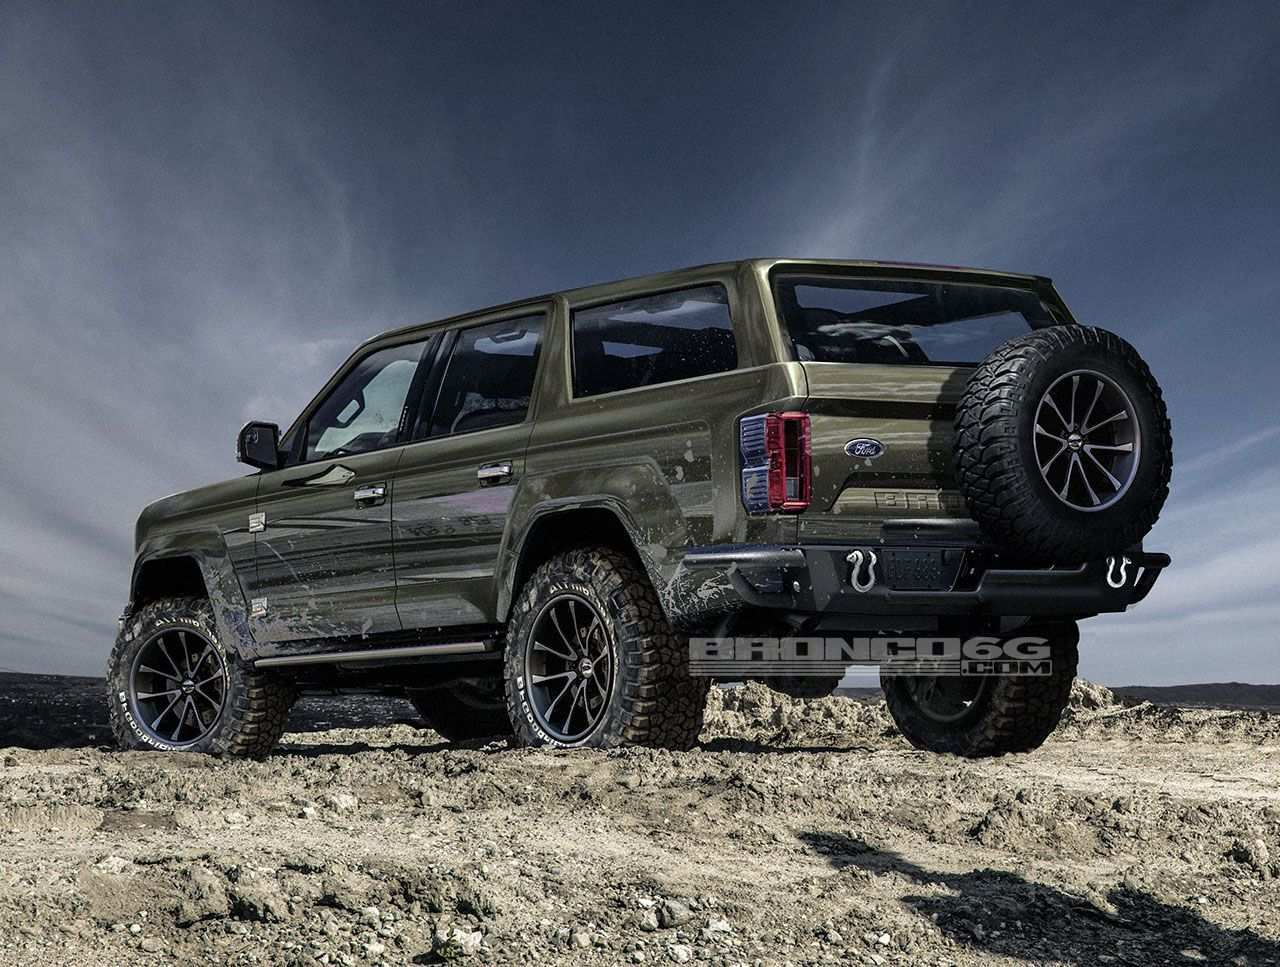 16 Best Review 2020 Ford Bronco 6G Rumors for 2020 Ford Bronco 6G